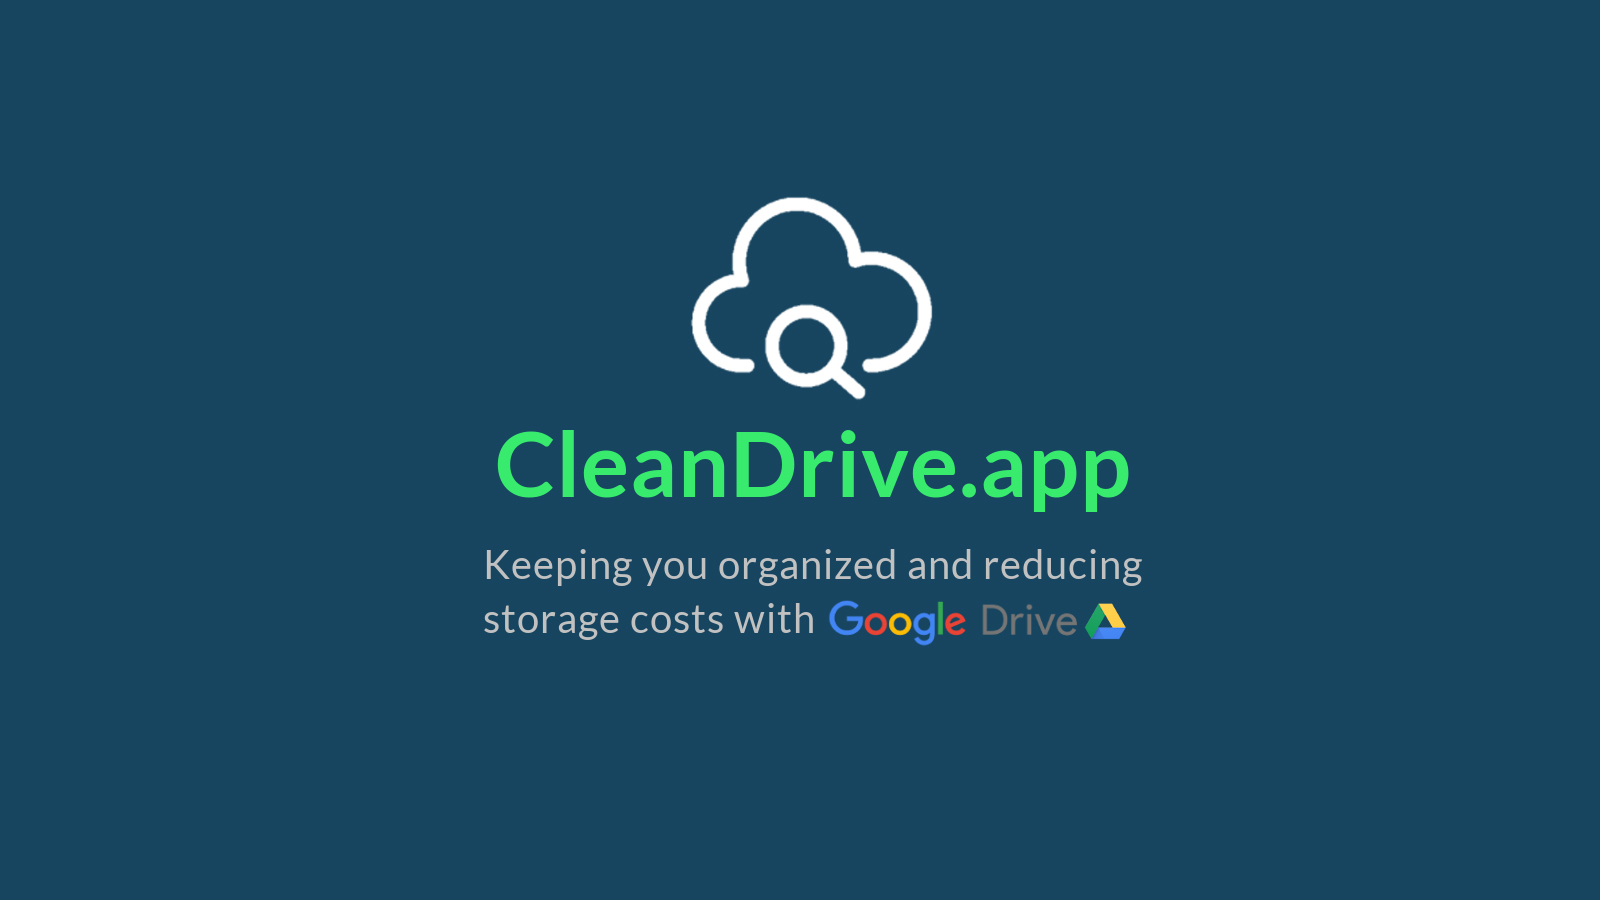 Clean Drive is a powerful tool for reclaiming your cloud storage and starting fresh in 2021